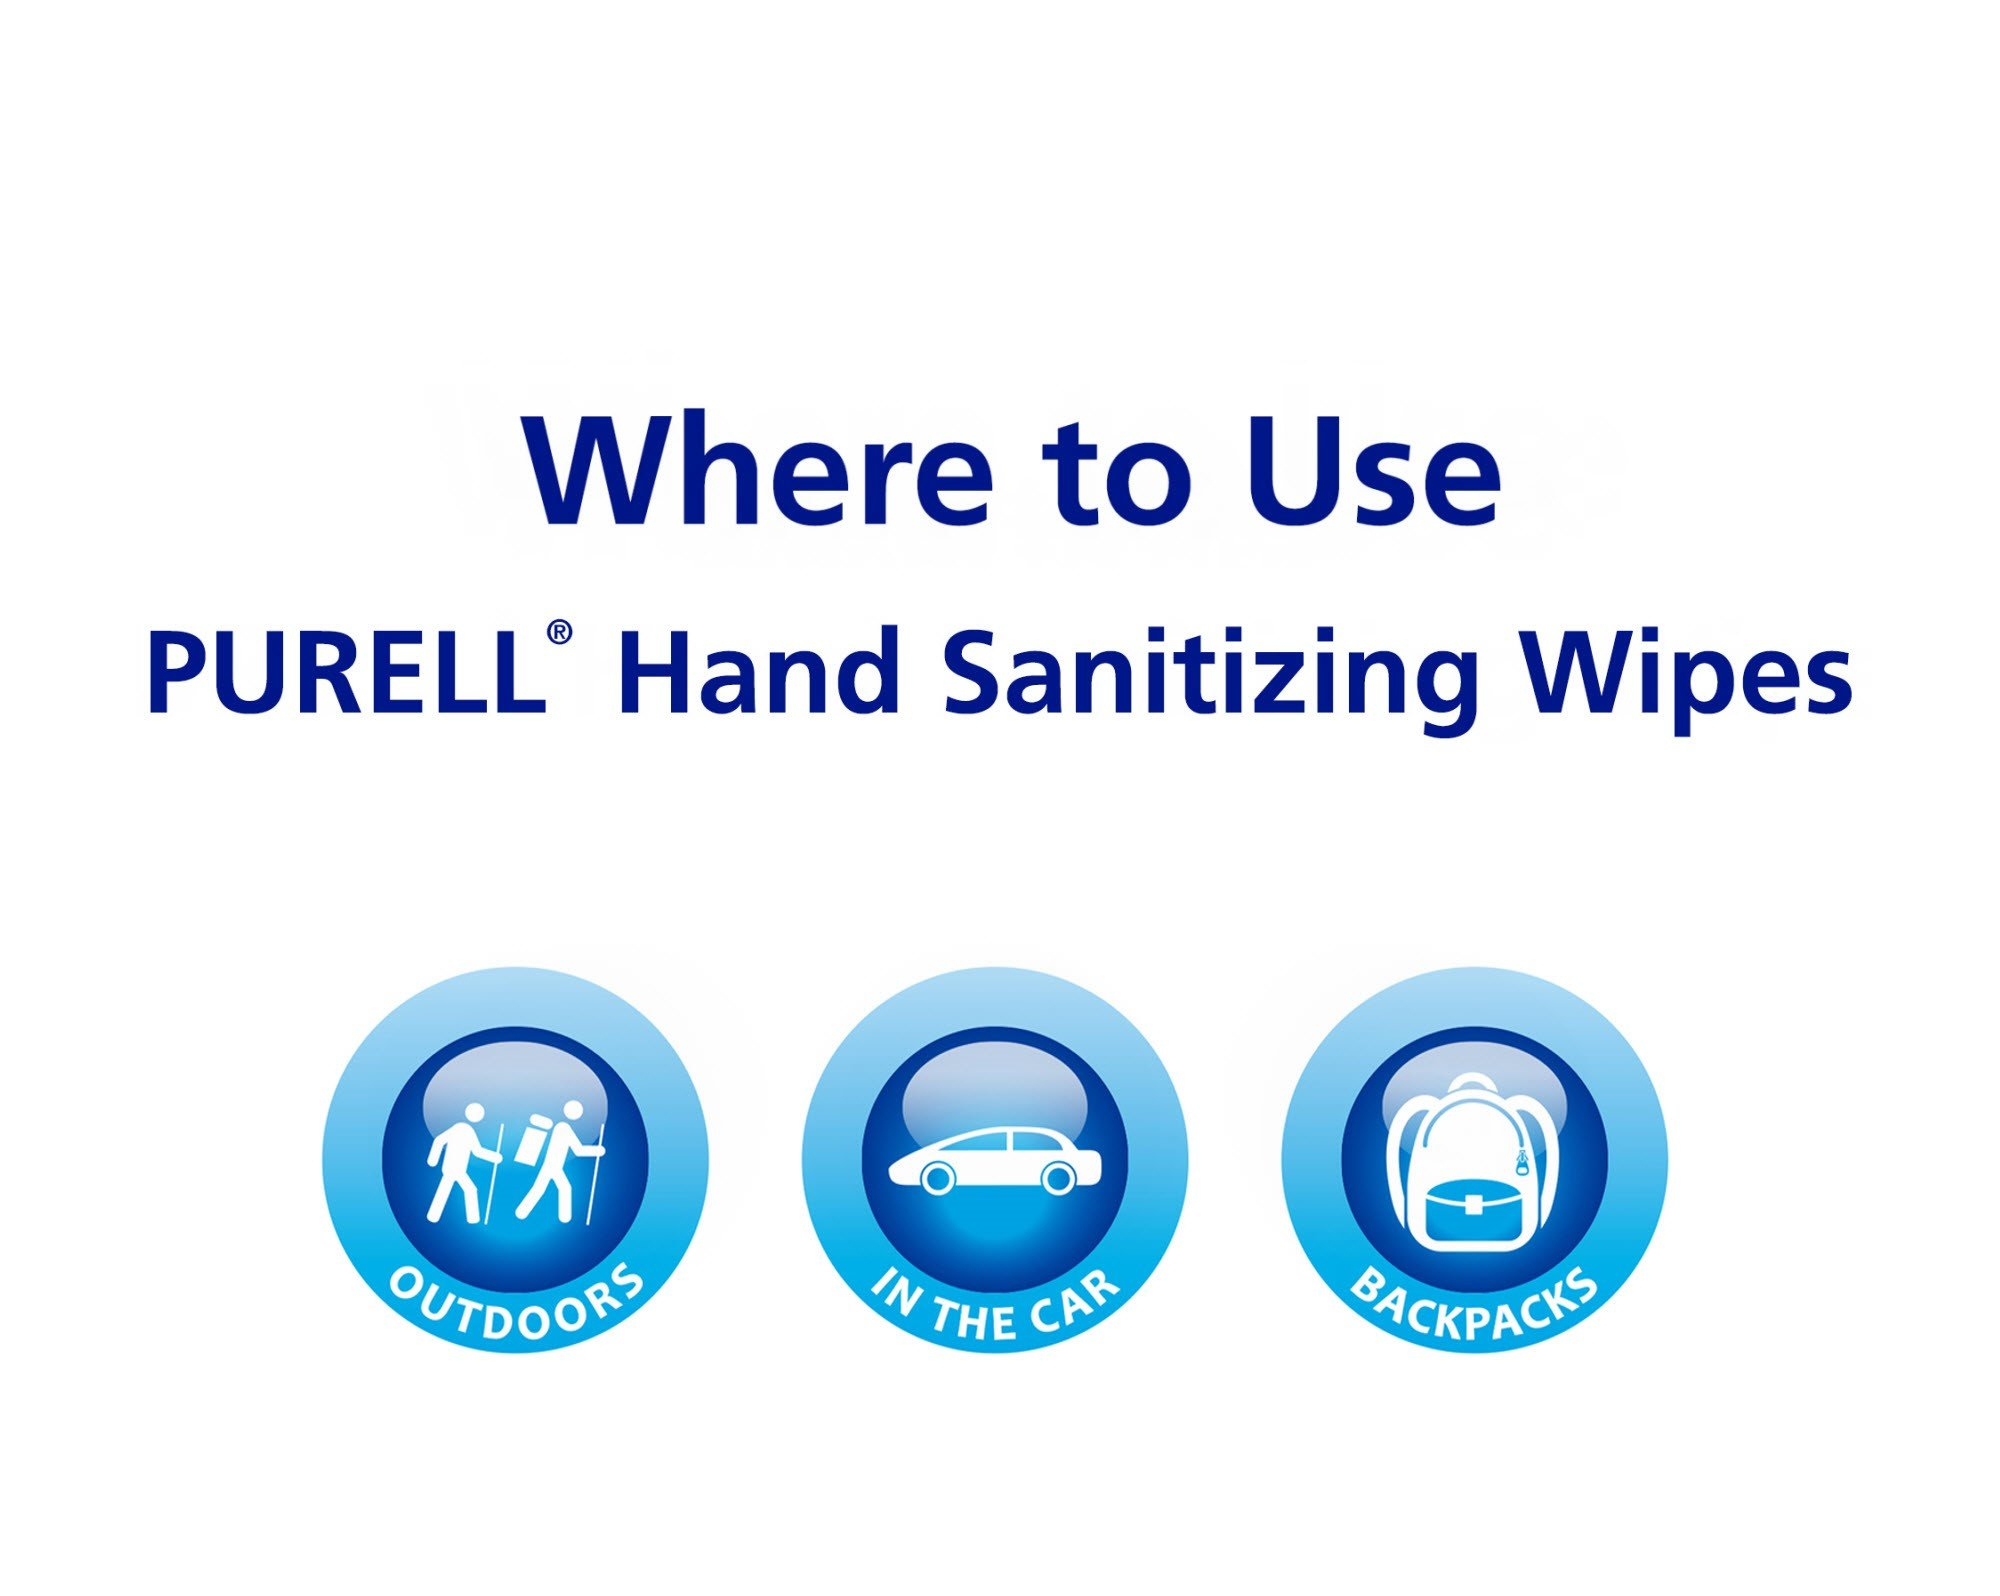 PURELL Hand Sanitizing Alcohol Wipes - Portable Individually Wrapped Wipes (Pack fo 300) - 9020-06-EC by Purell (Image #6)